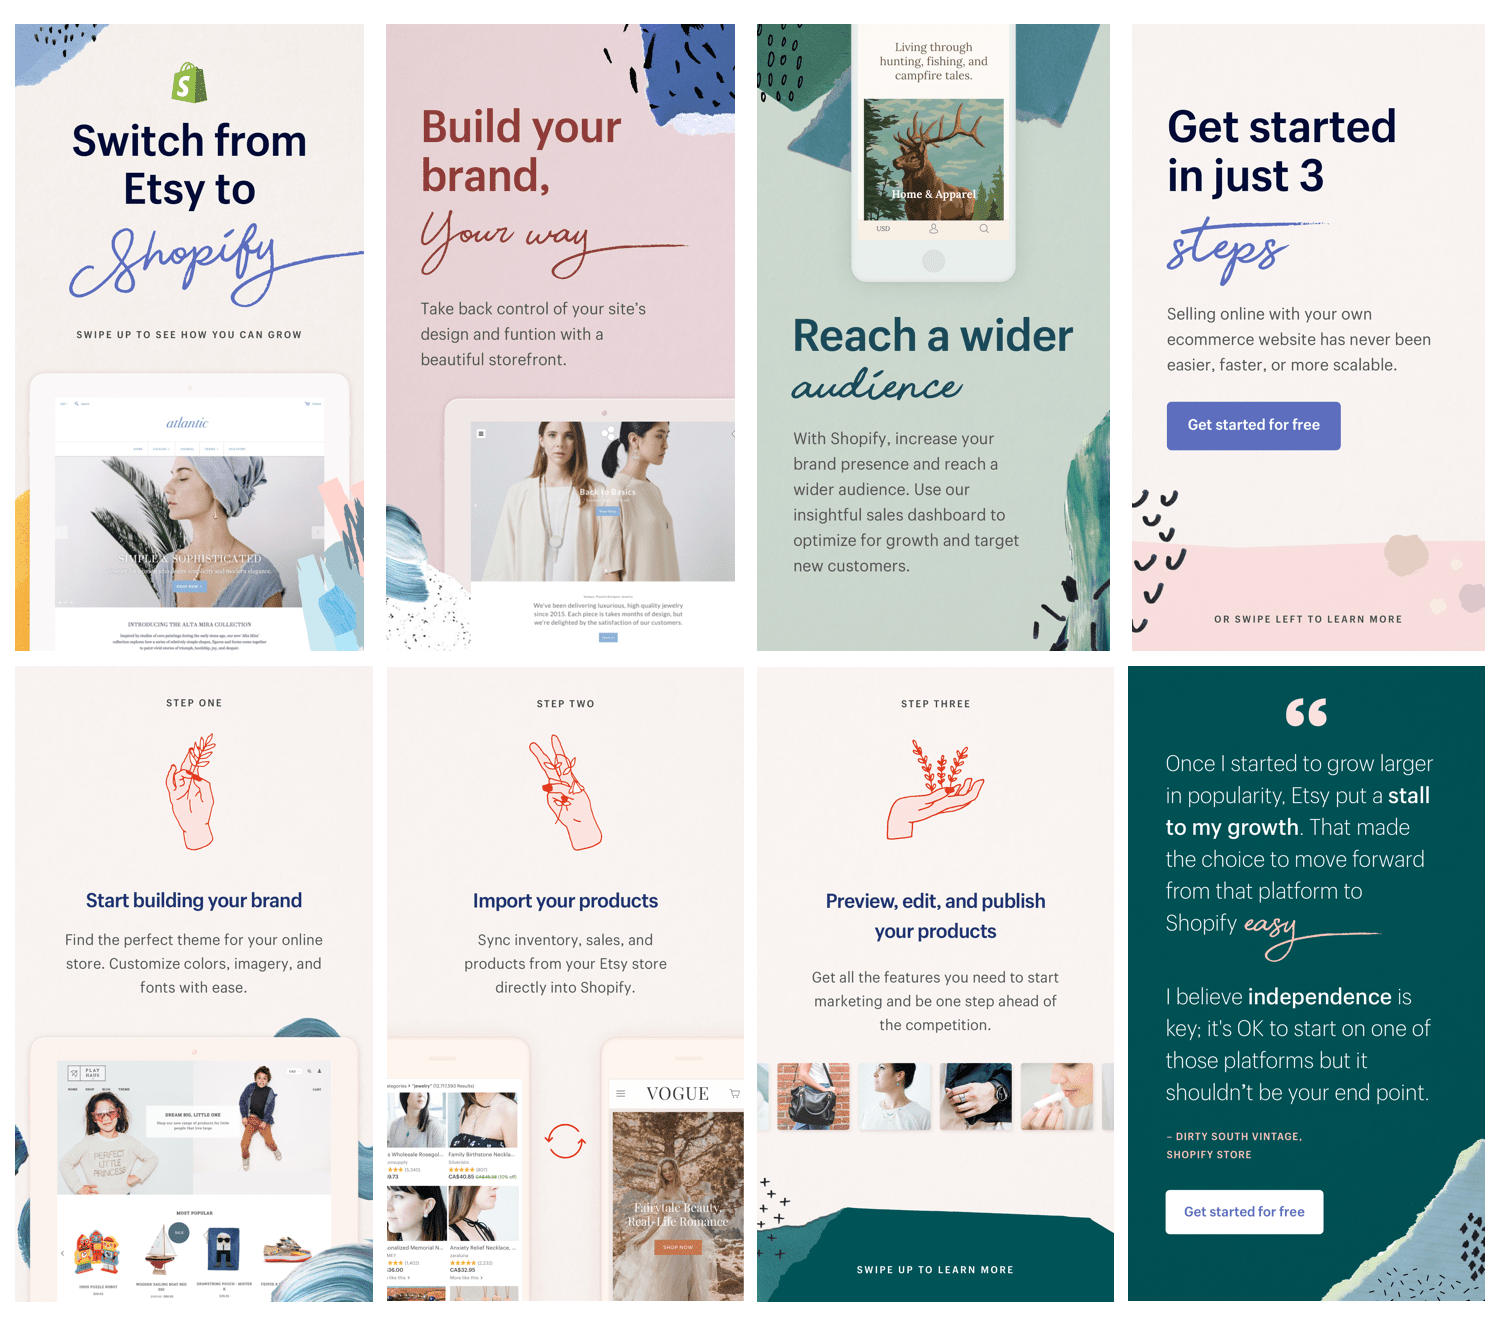 switch from etsy - web design work-min.png